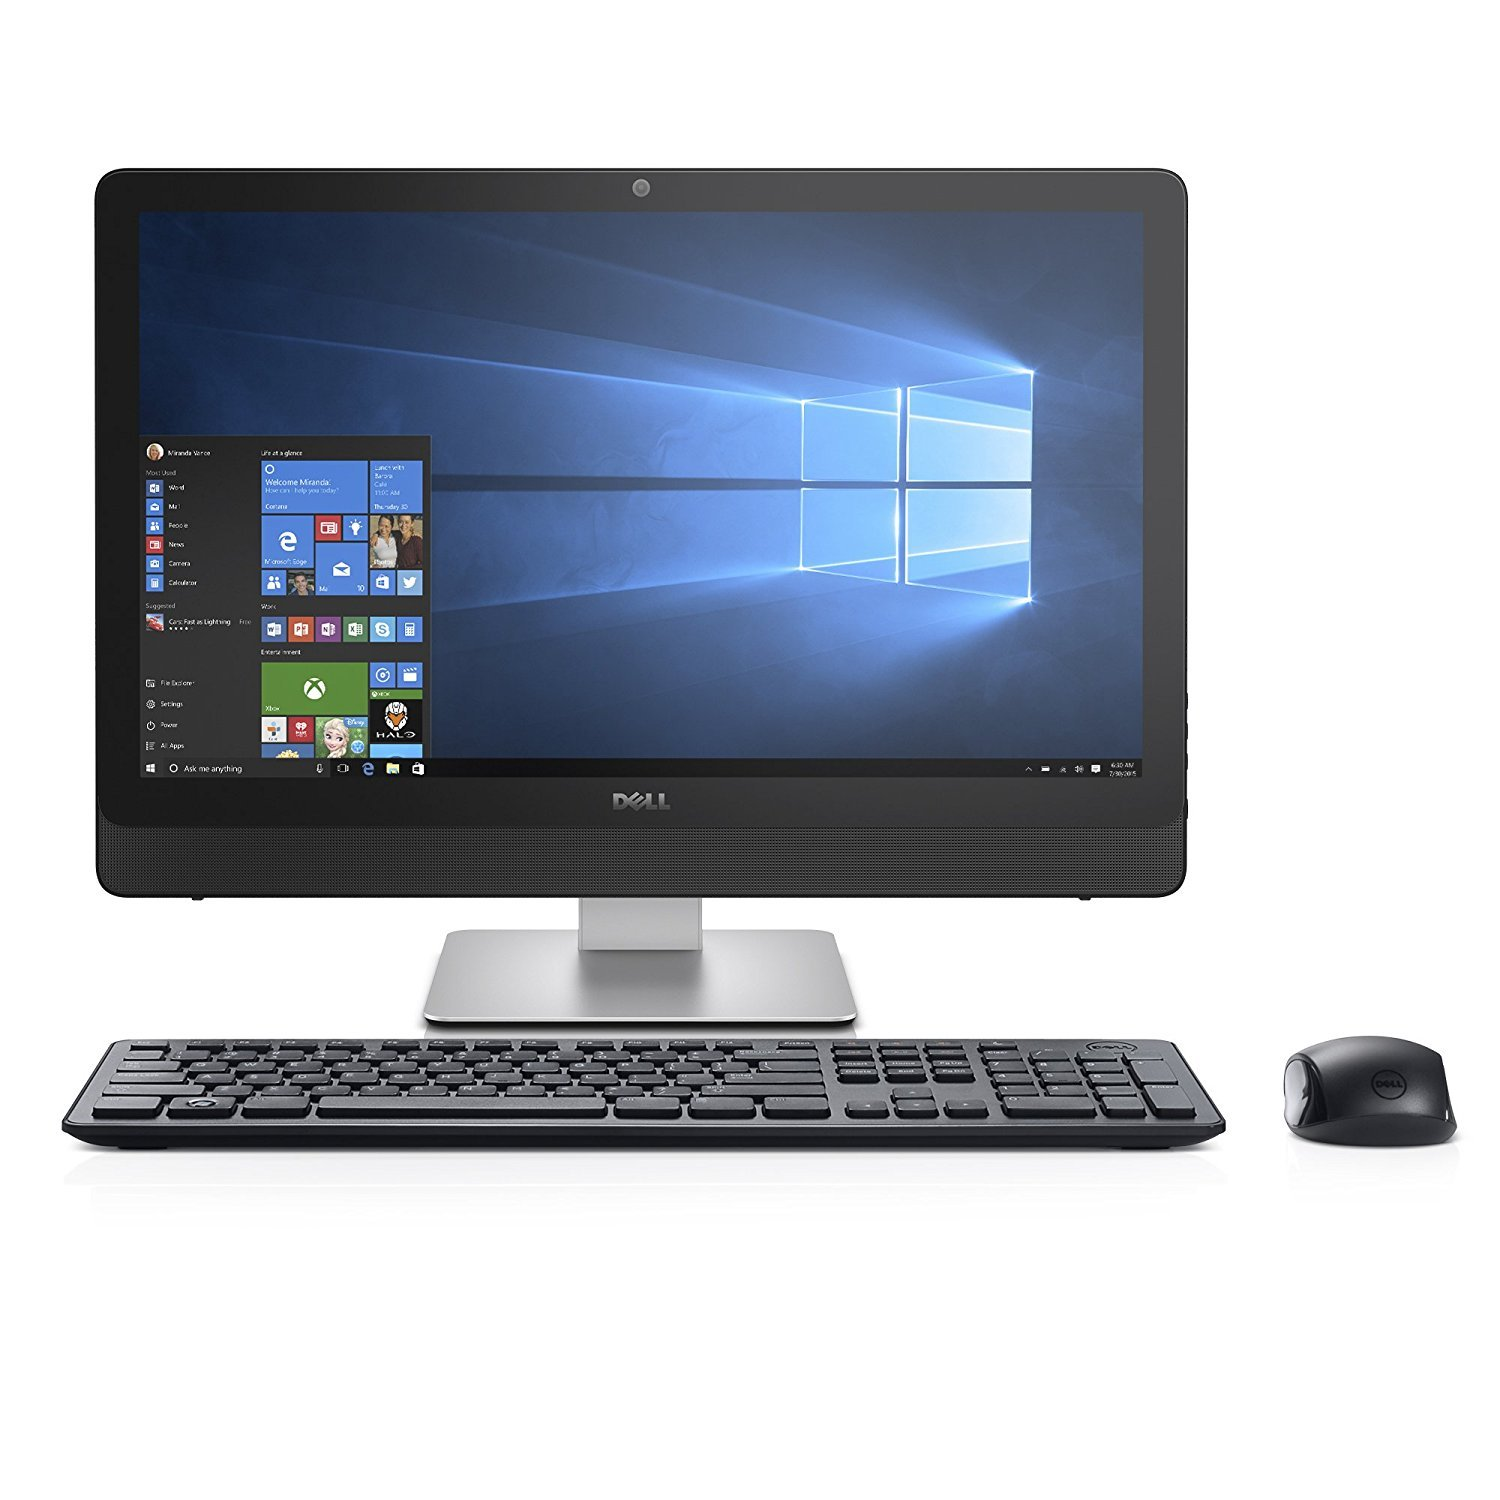 Dell Inspiron LED-Backlit Touch 23.8'' Full HD (1920 x 1080) All-In-One Computer, Intel Core i3-6100U, 8GB RAM, 1TB HDD, USB 3.0, HDMI, WiFi 802.11AC, Bluetooth, DVD RW, HD Webcam, Windows 10